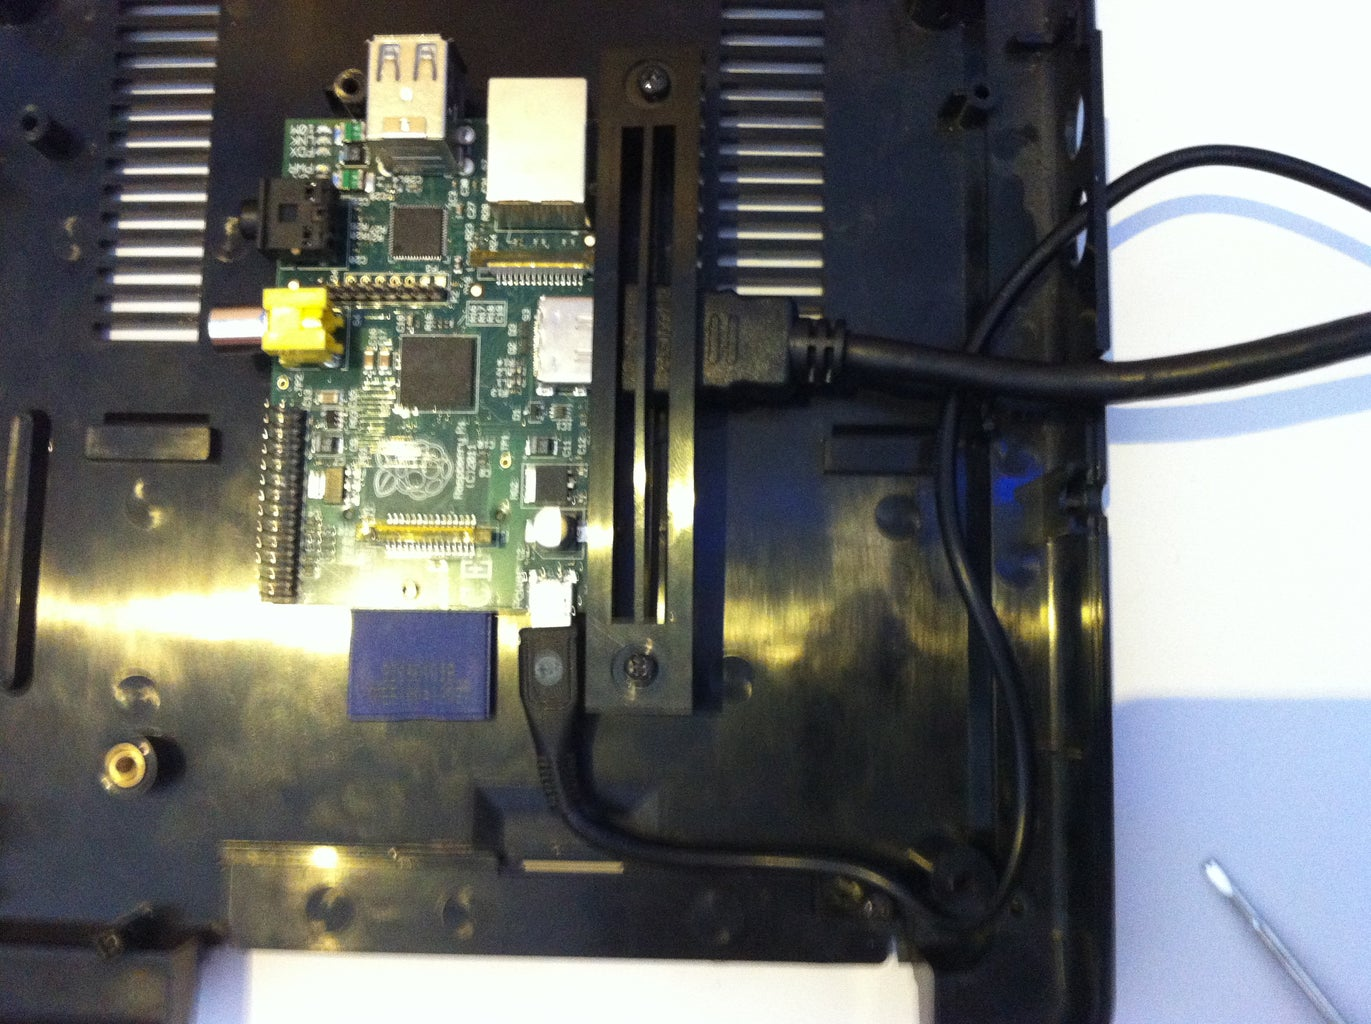 Inserting the Pi